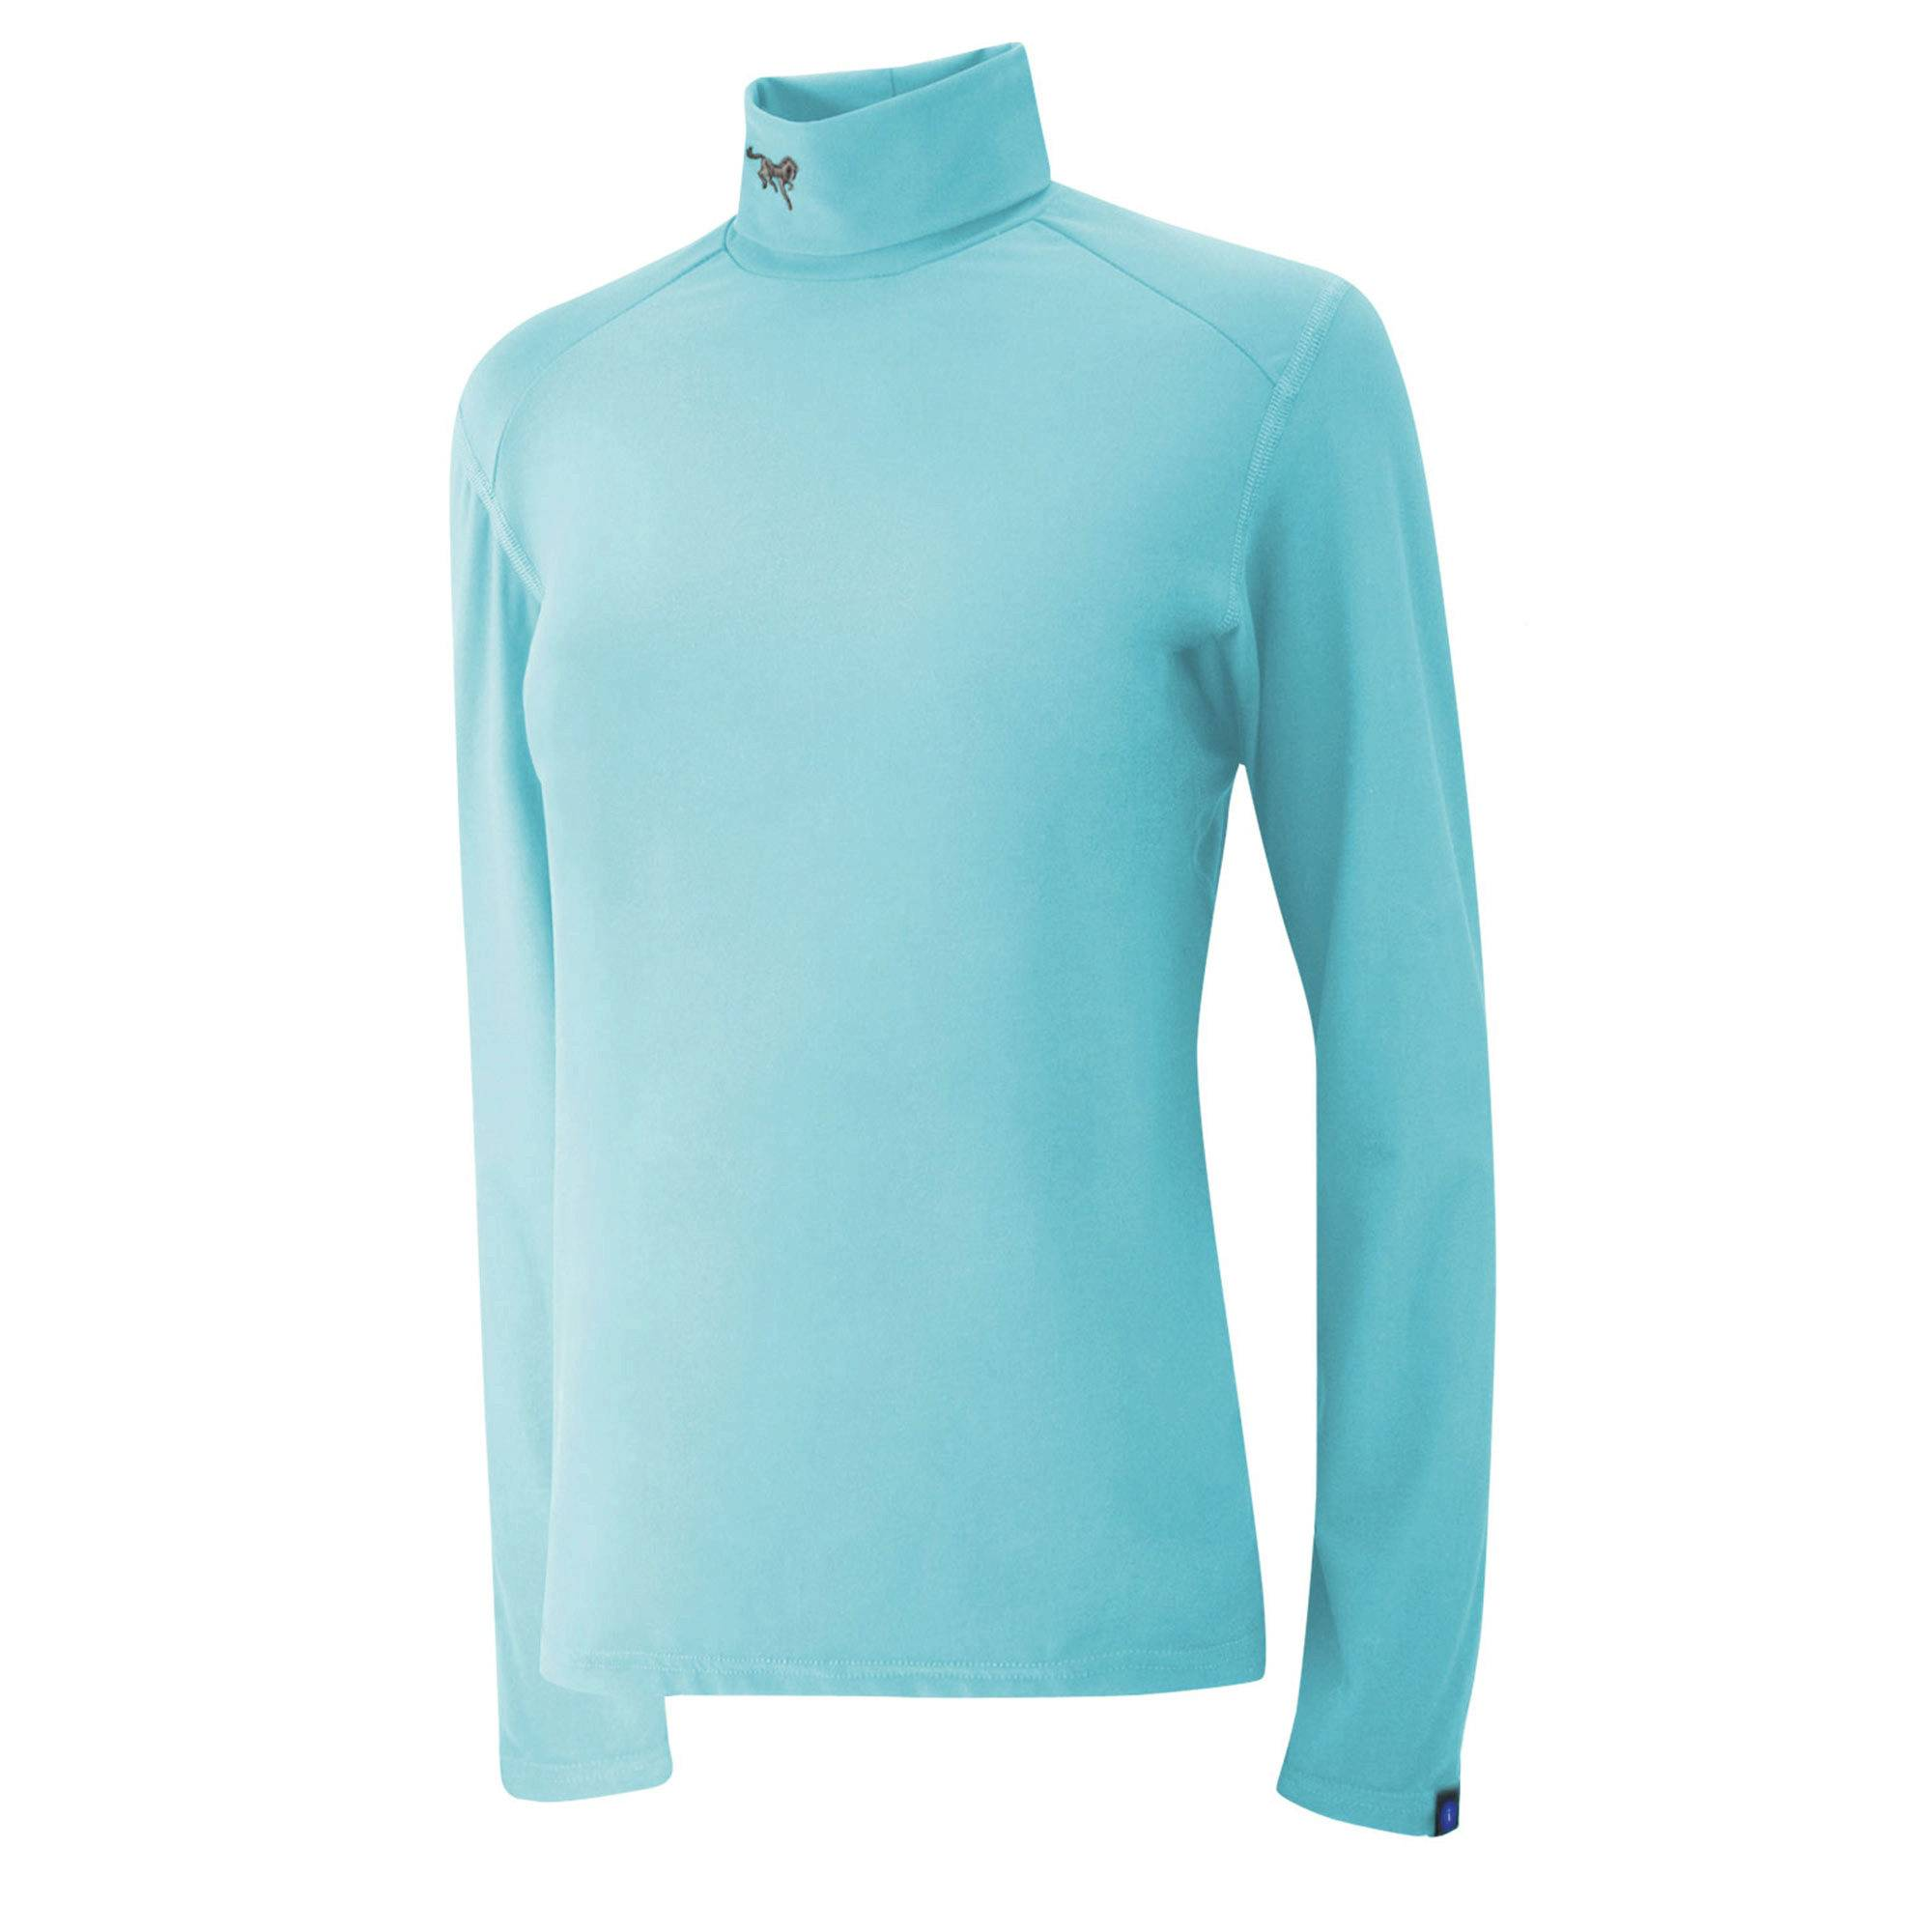 Irideon Kids' Thermalux Turtleneck